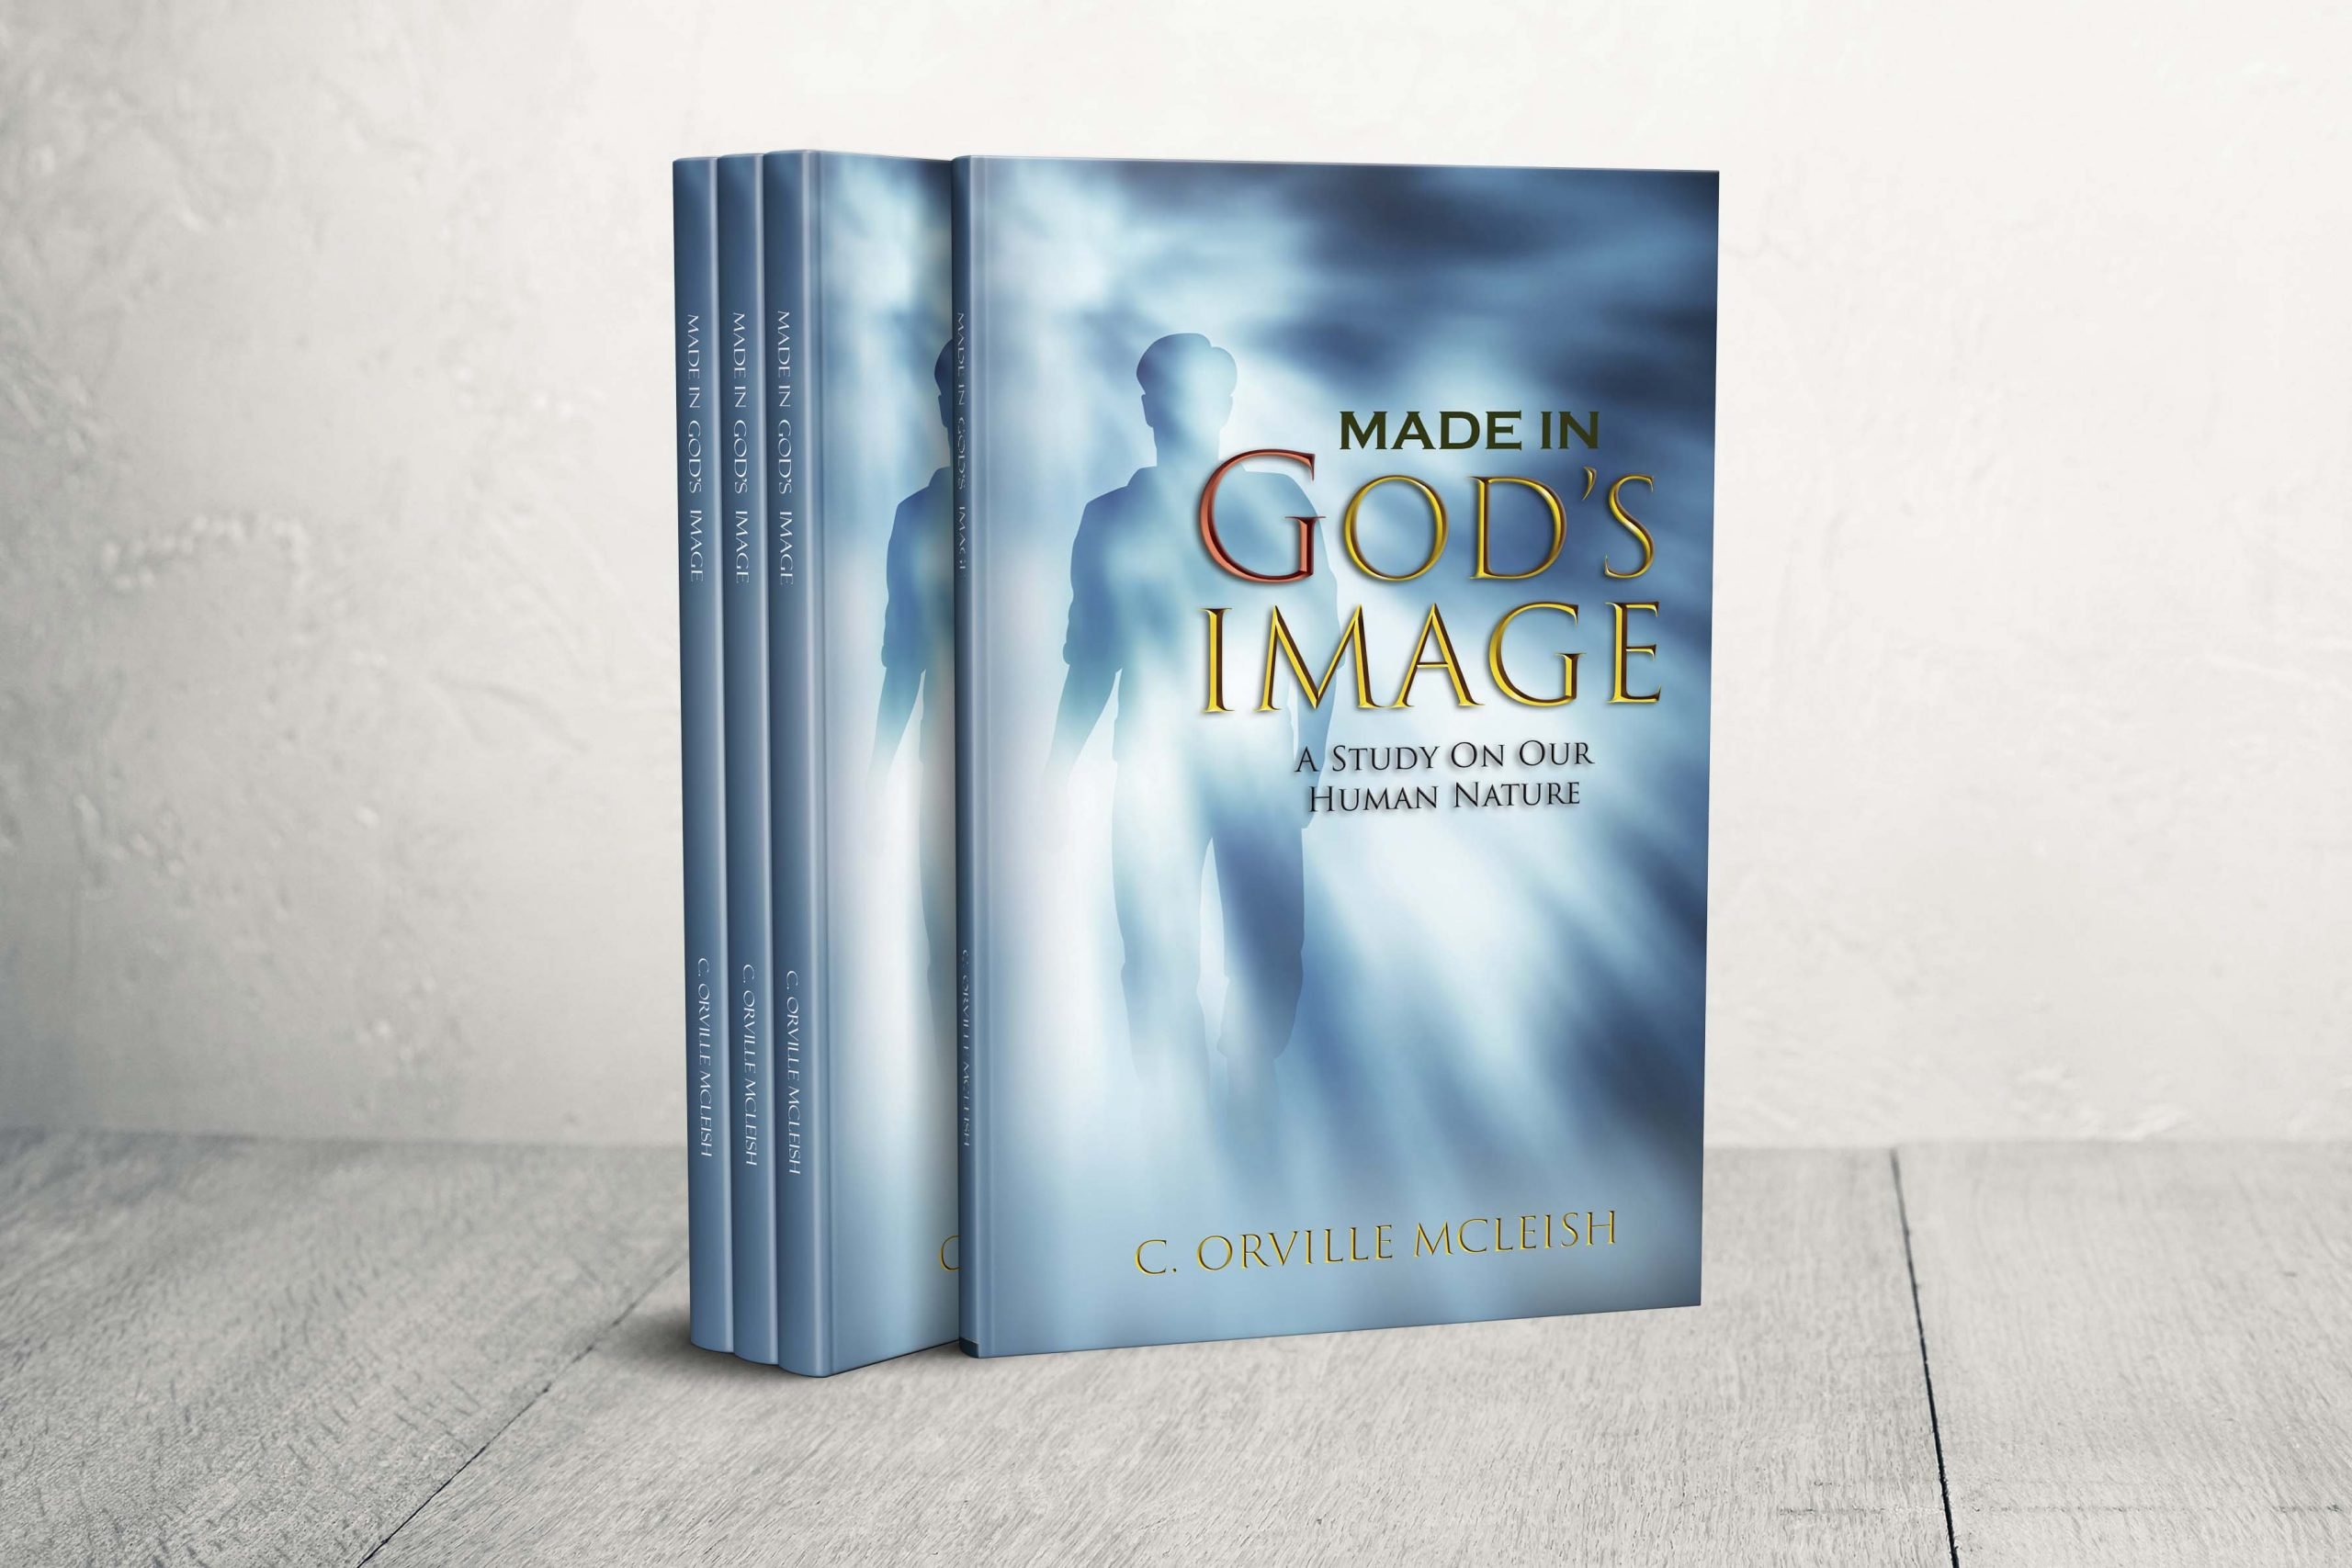 Made in Gods Image